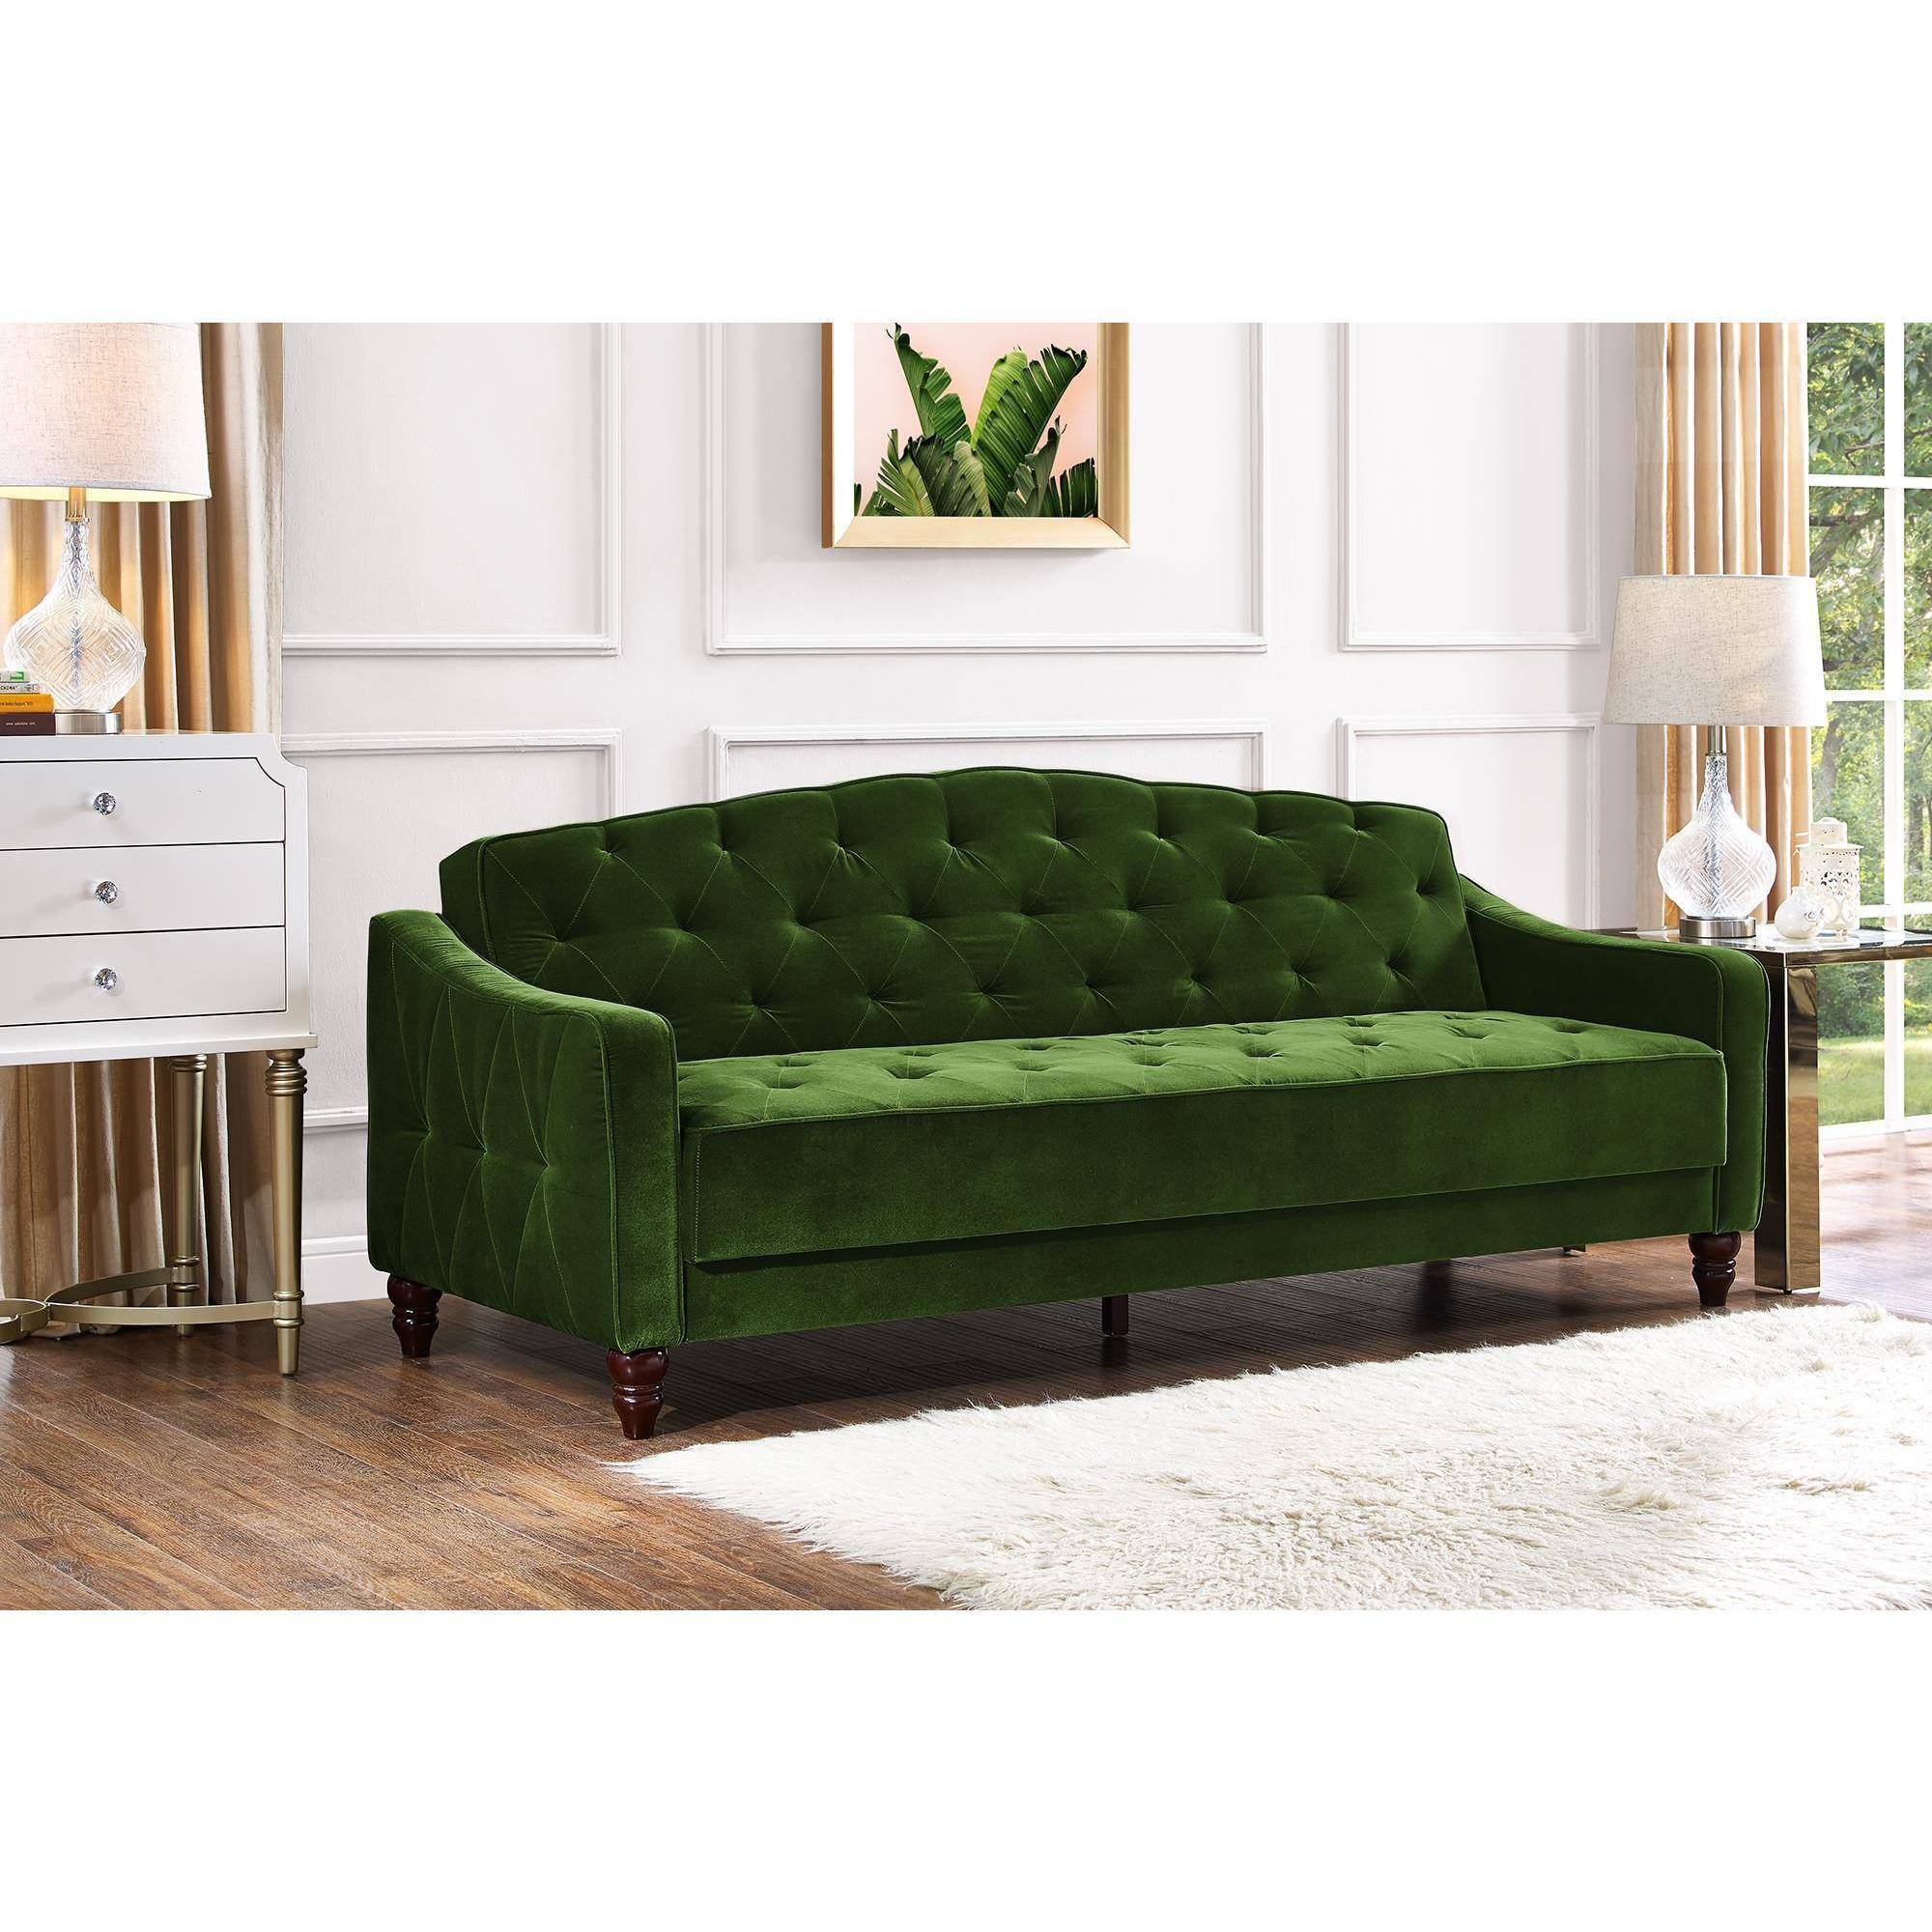 Beautiful Novogratz Vintage Tufted Sofa Sleeper II, Multiple Colors   Walmart.com